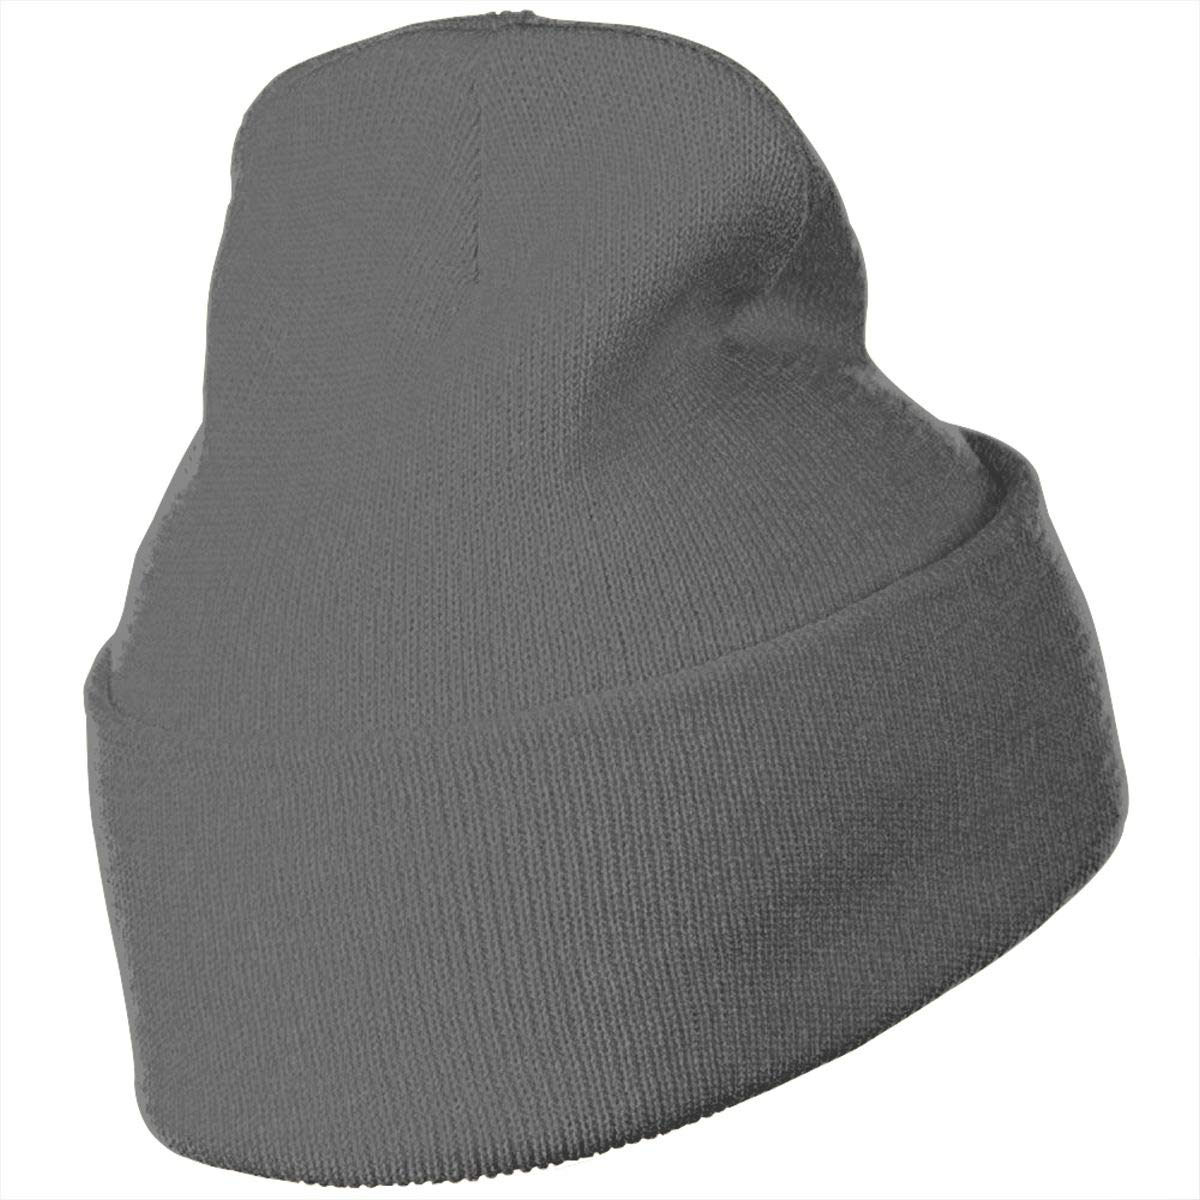 ONHIM Ying-yang Unisex Soft Warm Kintted Beanie Hat Slouchy Cycling Cap